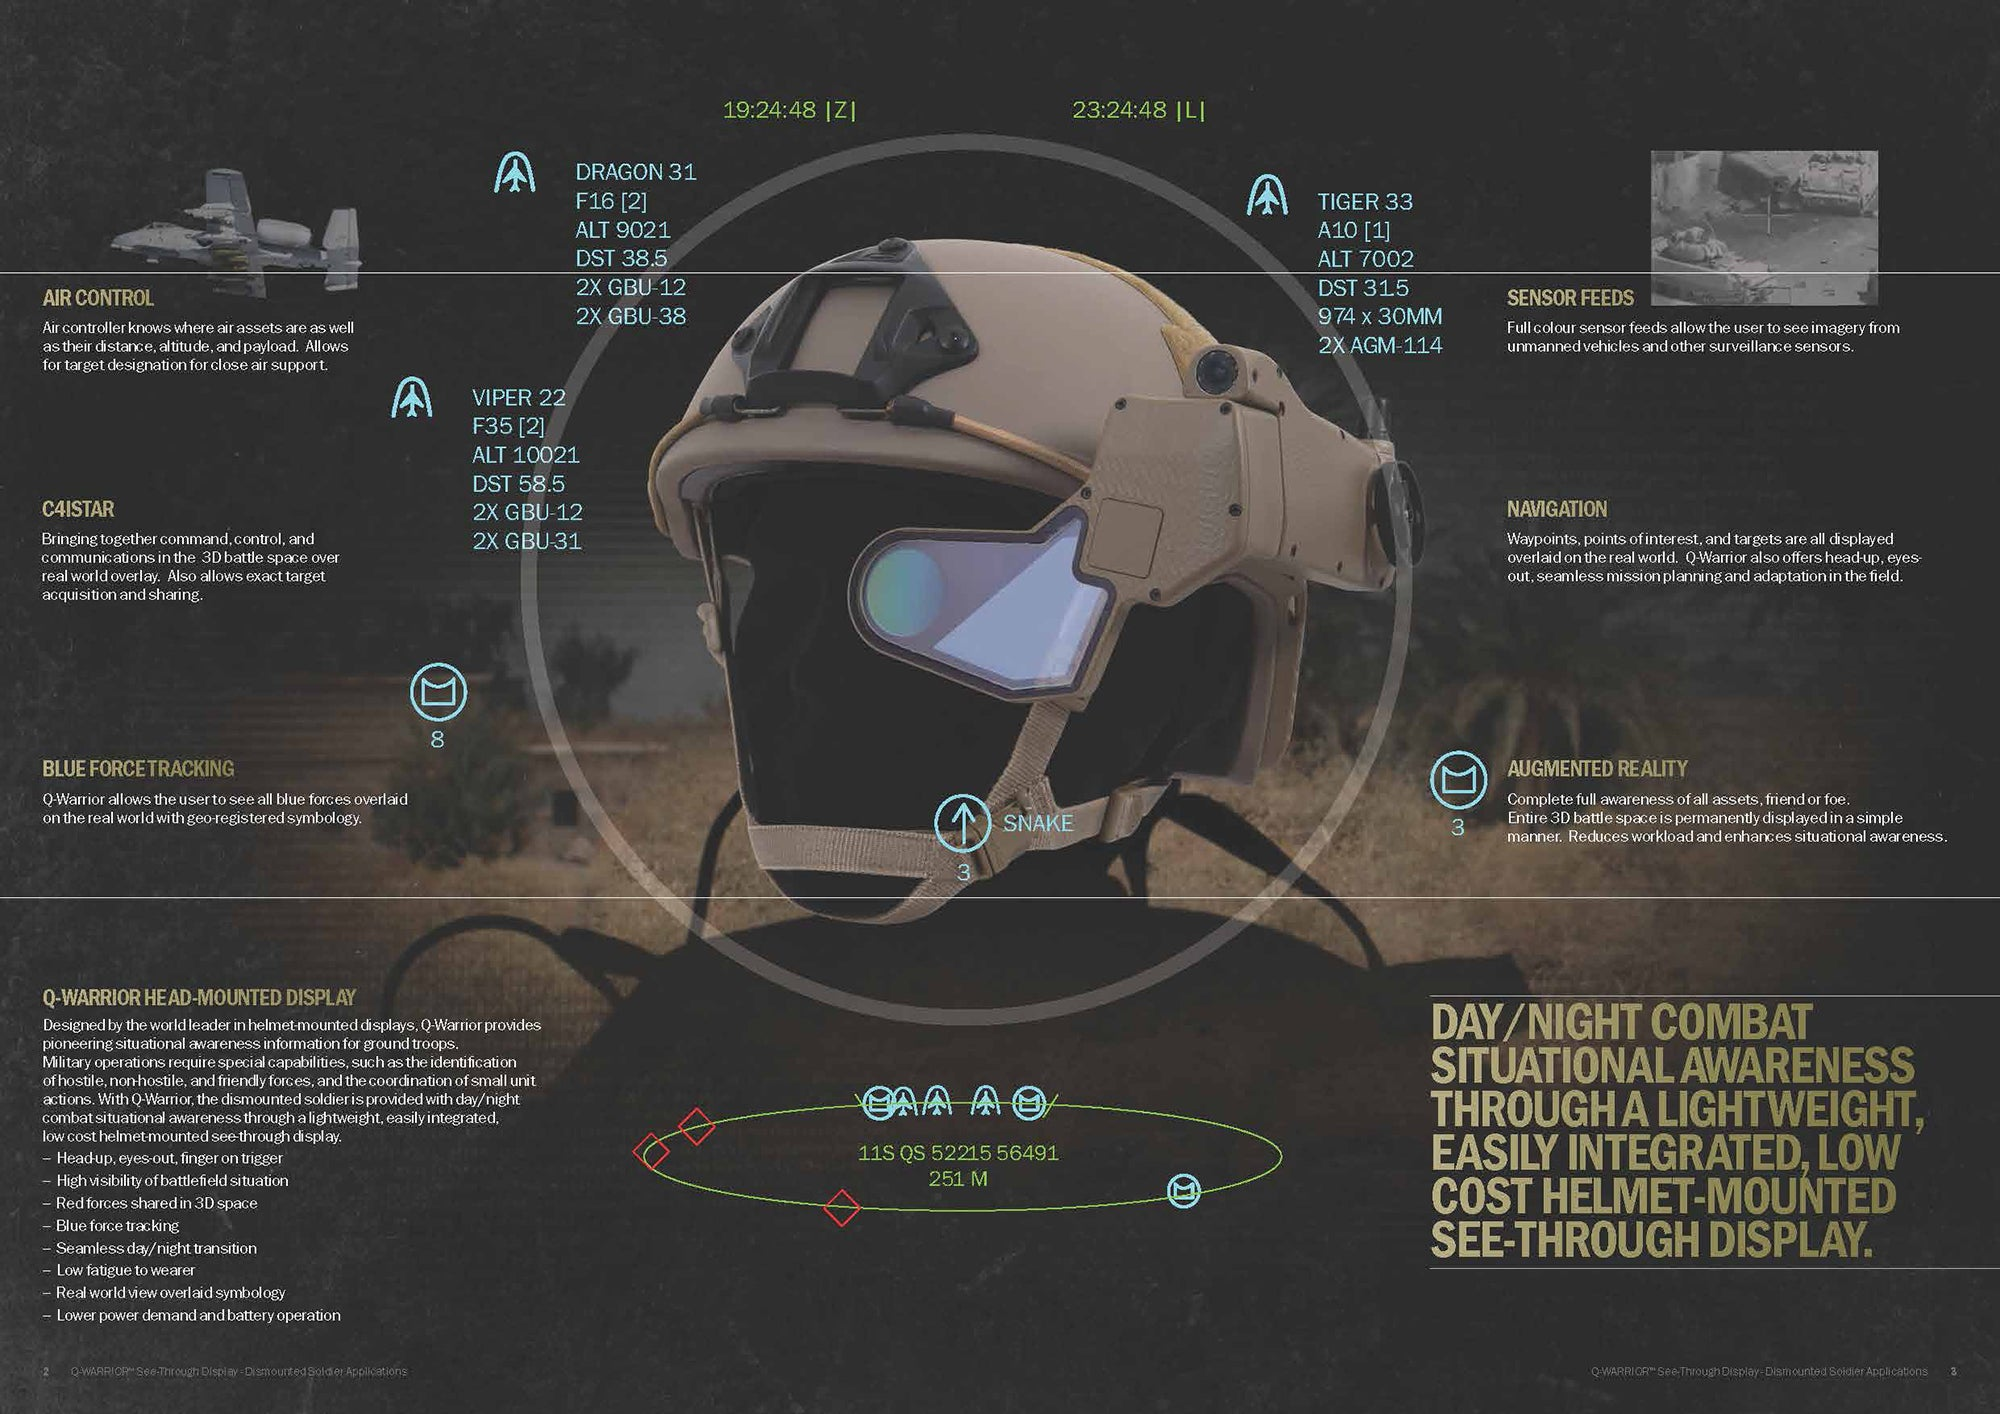 This Battlefield Heads-Up Display Turns US Troops Into Cyborg Soldiers